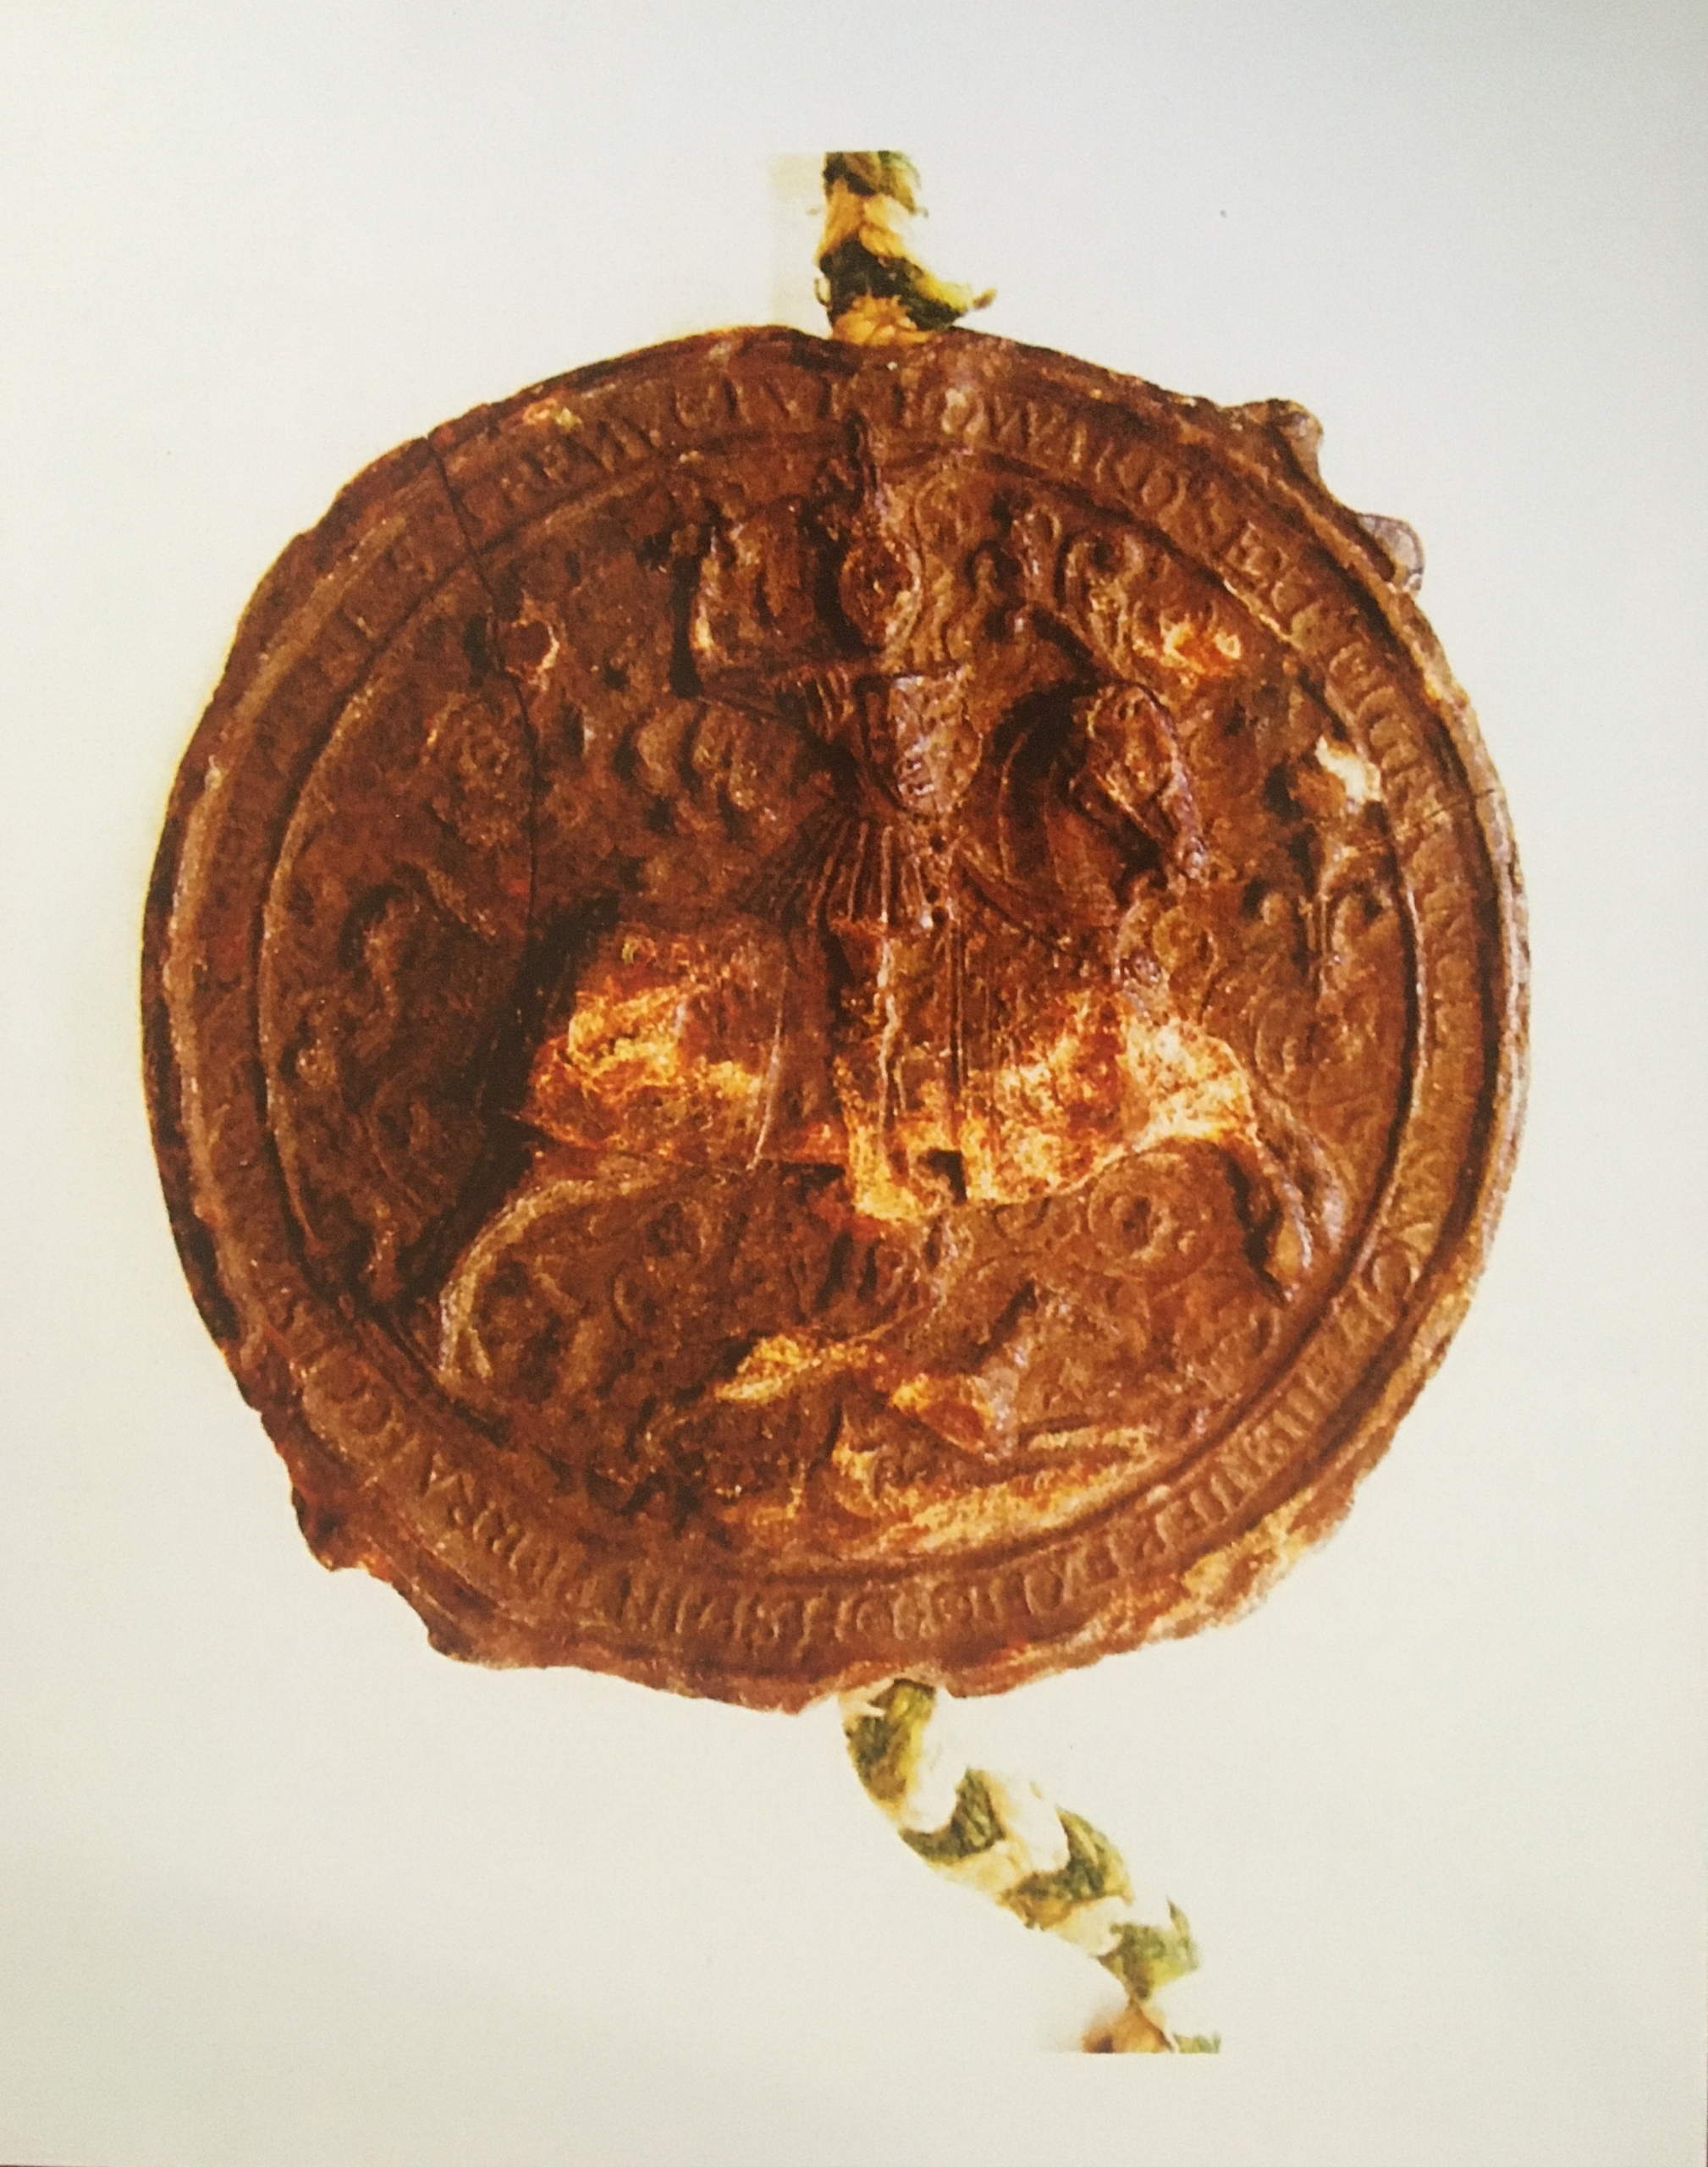 Image of Obverse of King Edward VI's seal attached to letters patent of 1548, which confirms rights to the Wednesday market and Michaelmas fair